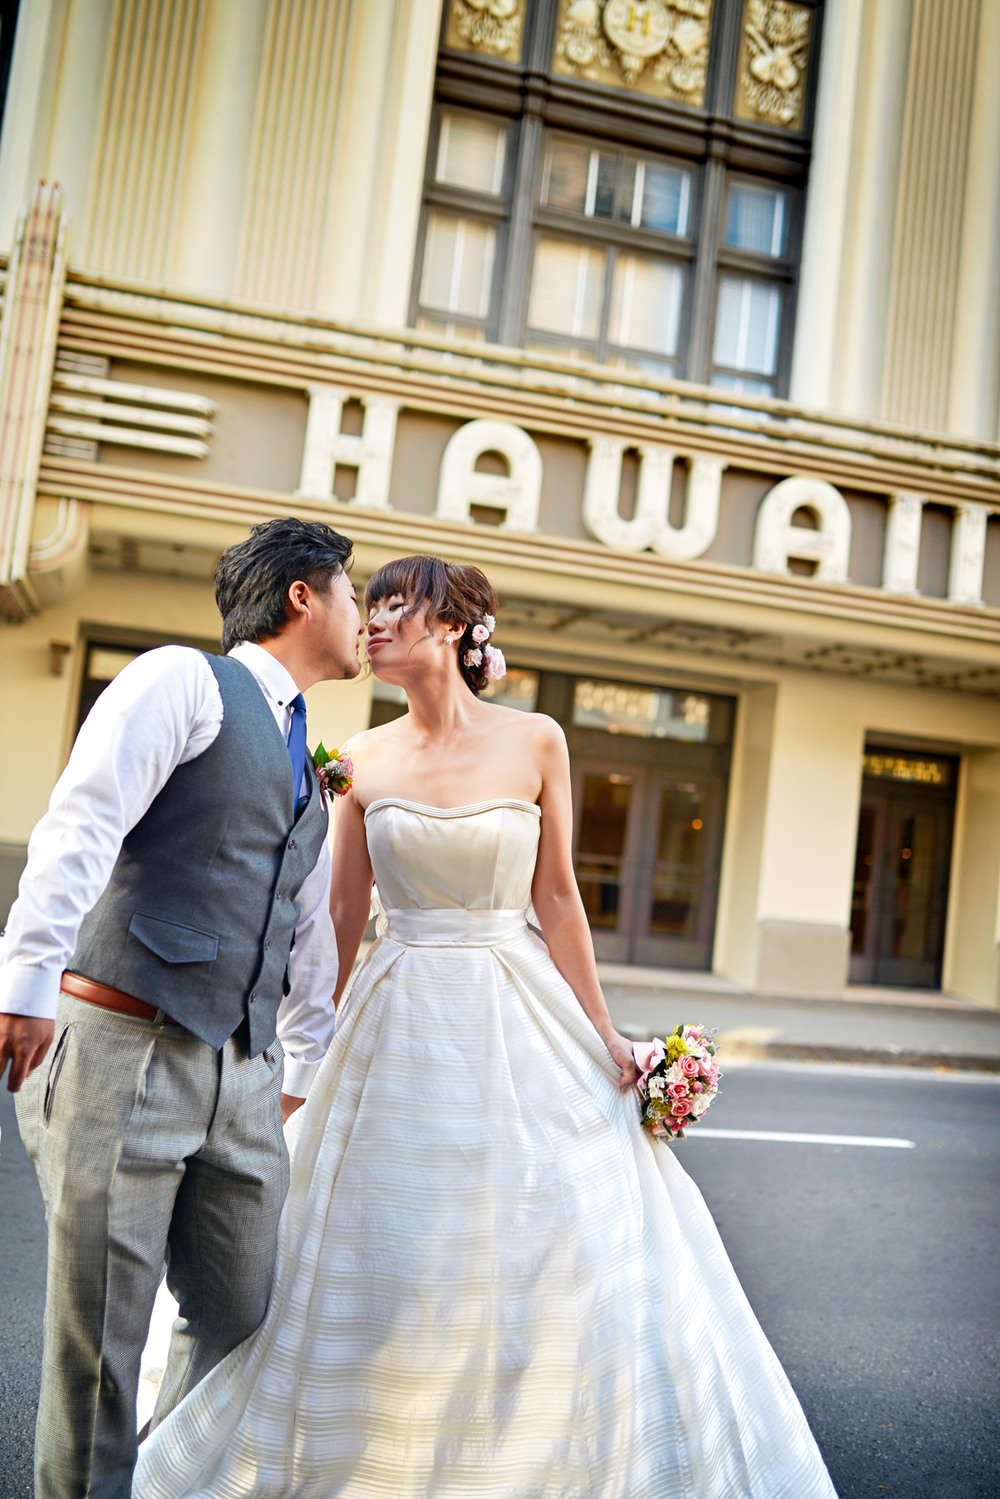 waikiki-beach-wedding-and-downtown-honolulu-hawaii-theater-stephen-ludwig-photography030.jpg